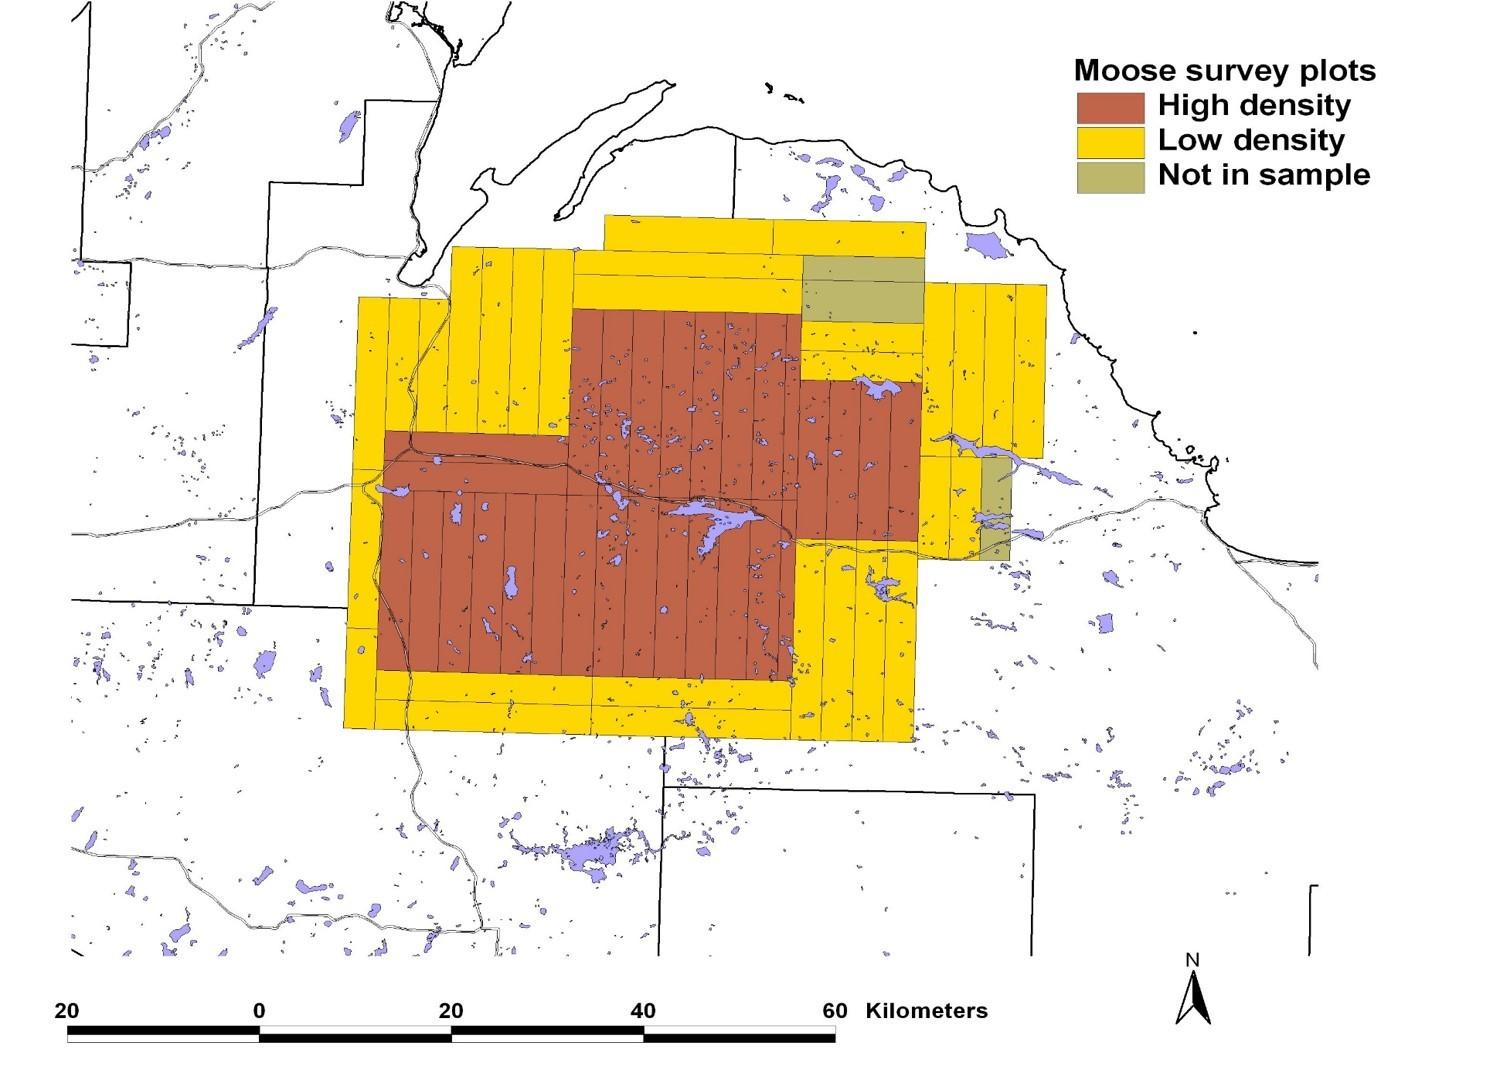 This map shows the high- and low-density core moose population areas in the western Upper Peninsula.